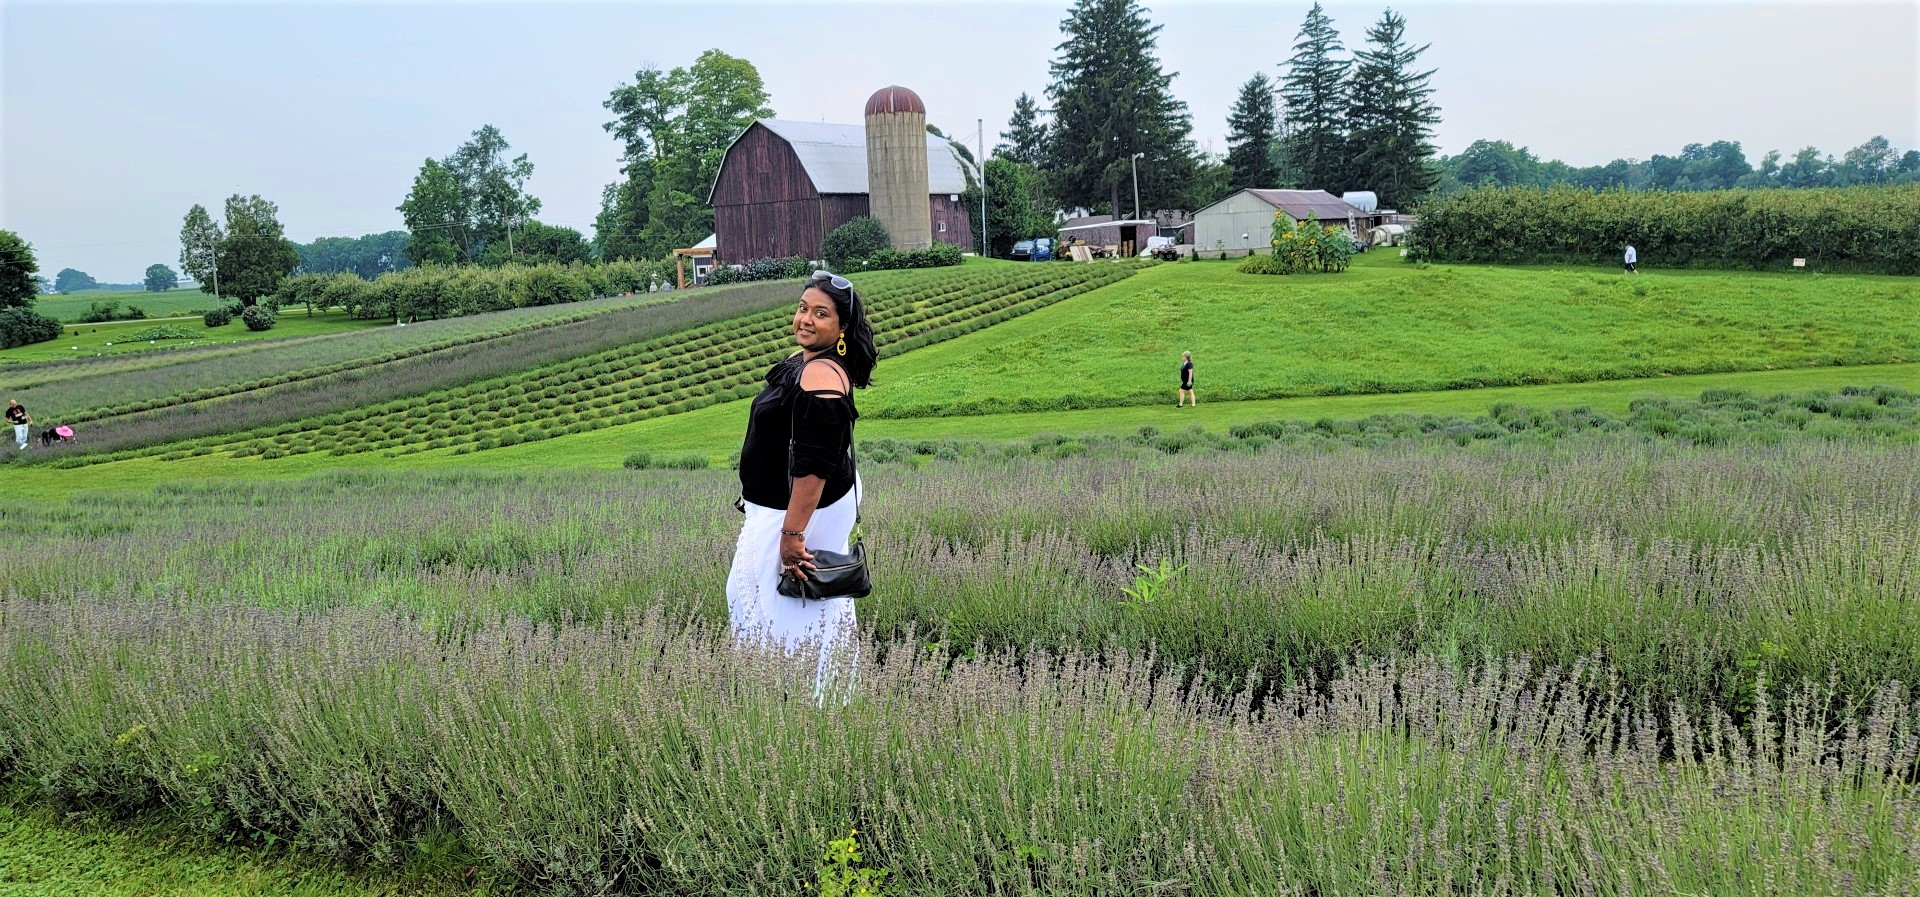 Yashy in lavender field with black top and white pants